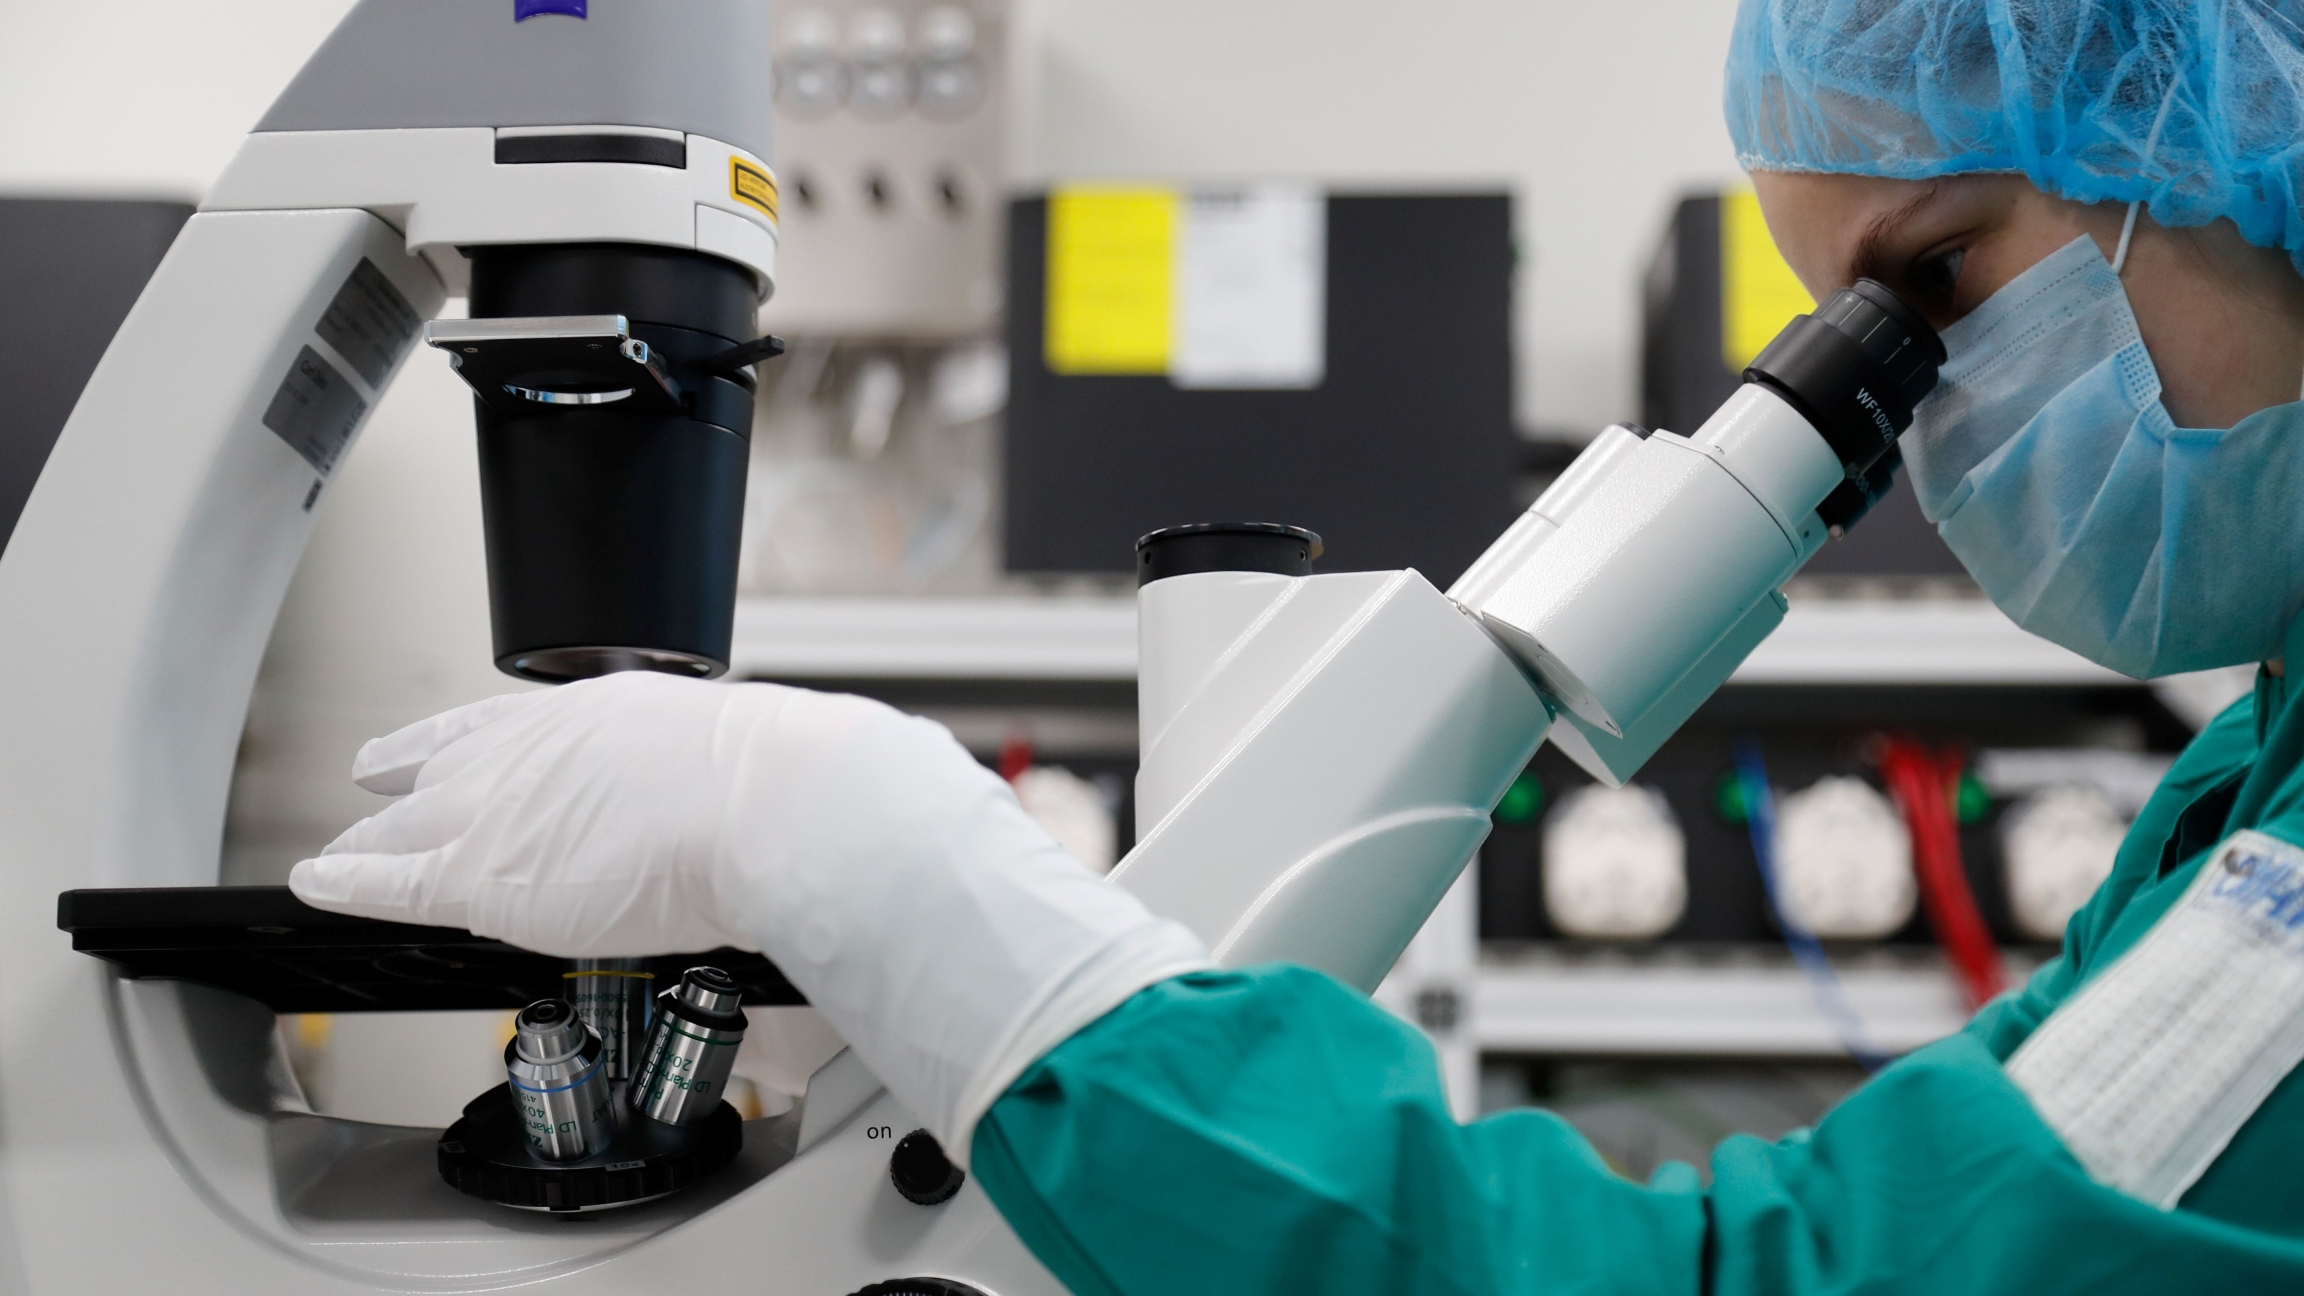 A scientist examines COVID-19 infected cellsunderamicroscopeduring research for a vaccine against thecoronavirusdisease (COVID-19) at a laboratory of BIOCAD biotechnology company in Saint Petersburg, Russia, May 20, 2020.